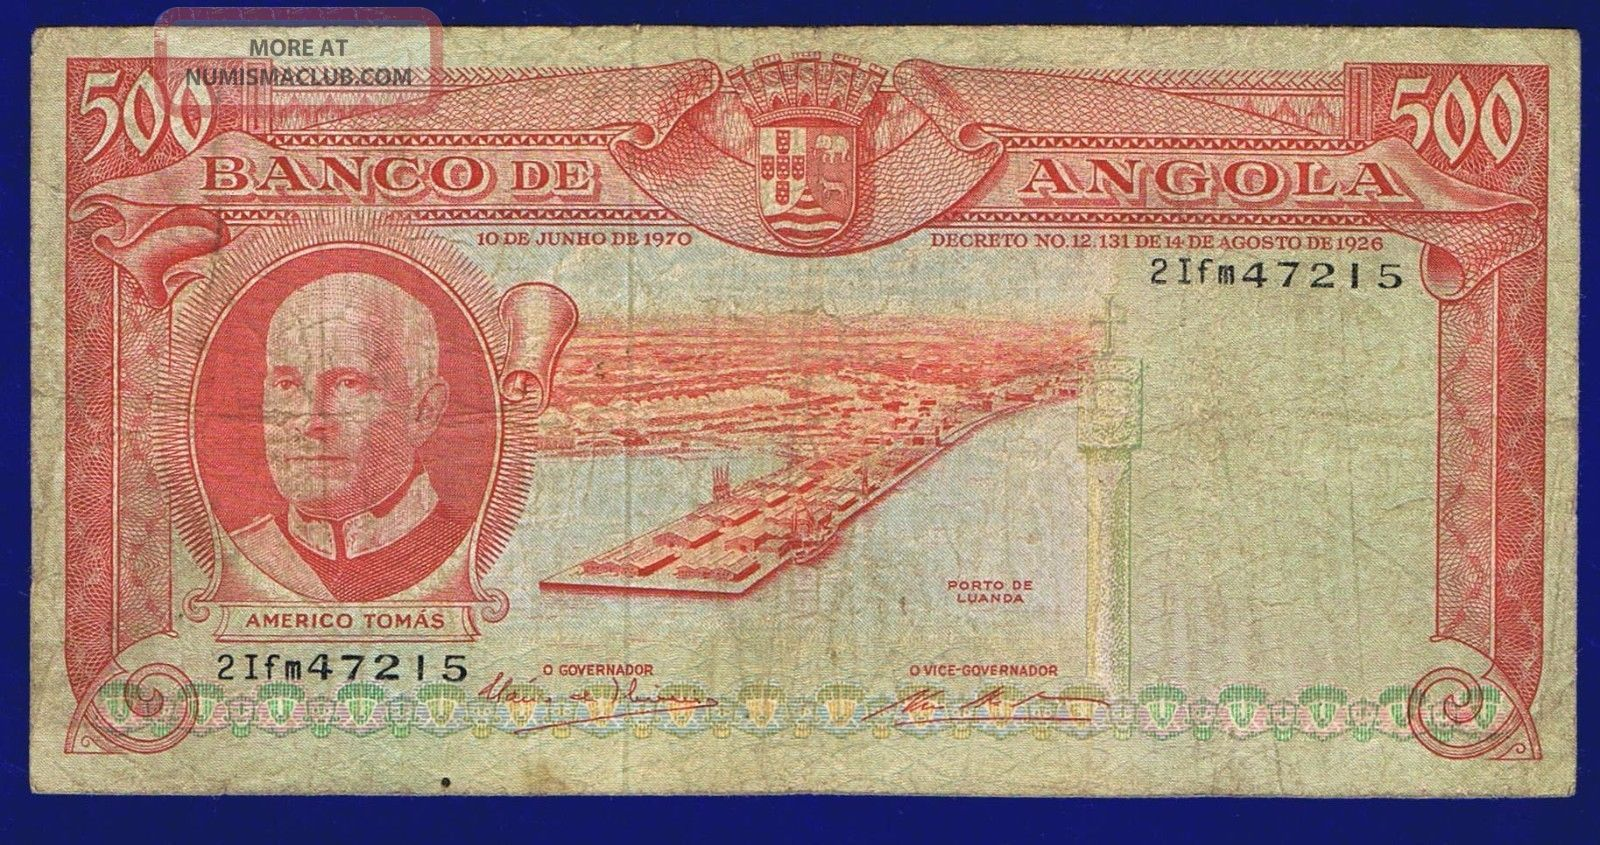 Angola 500 Escudos 1970 Pic97 Vg Angola photo